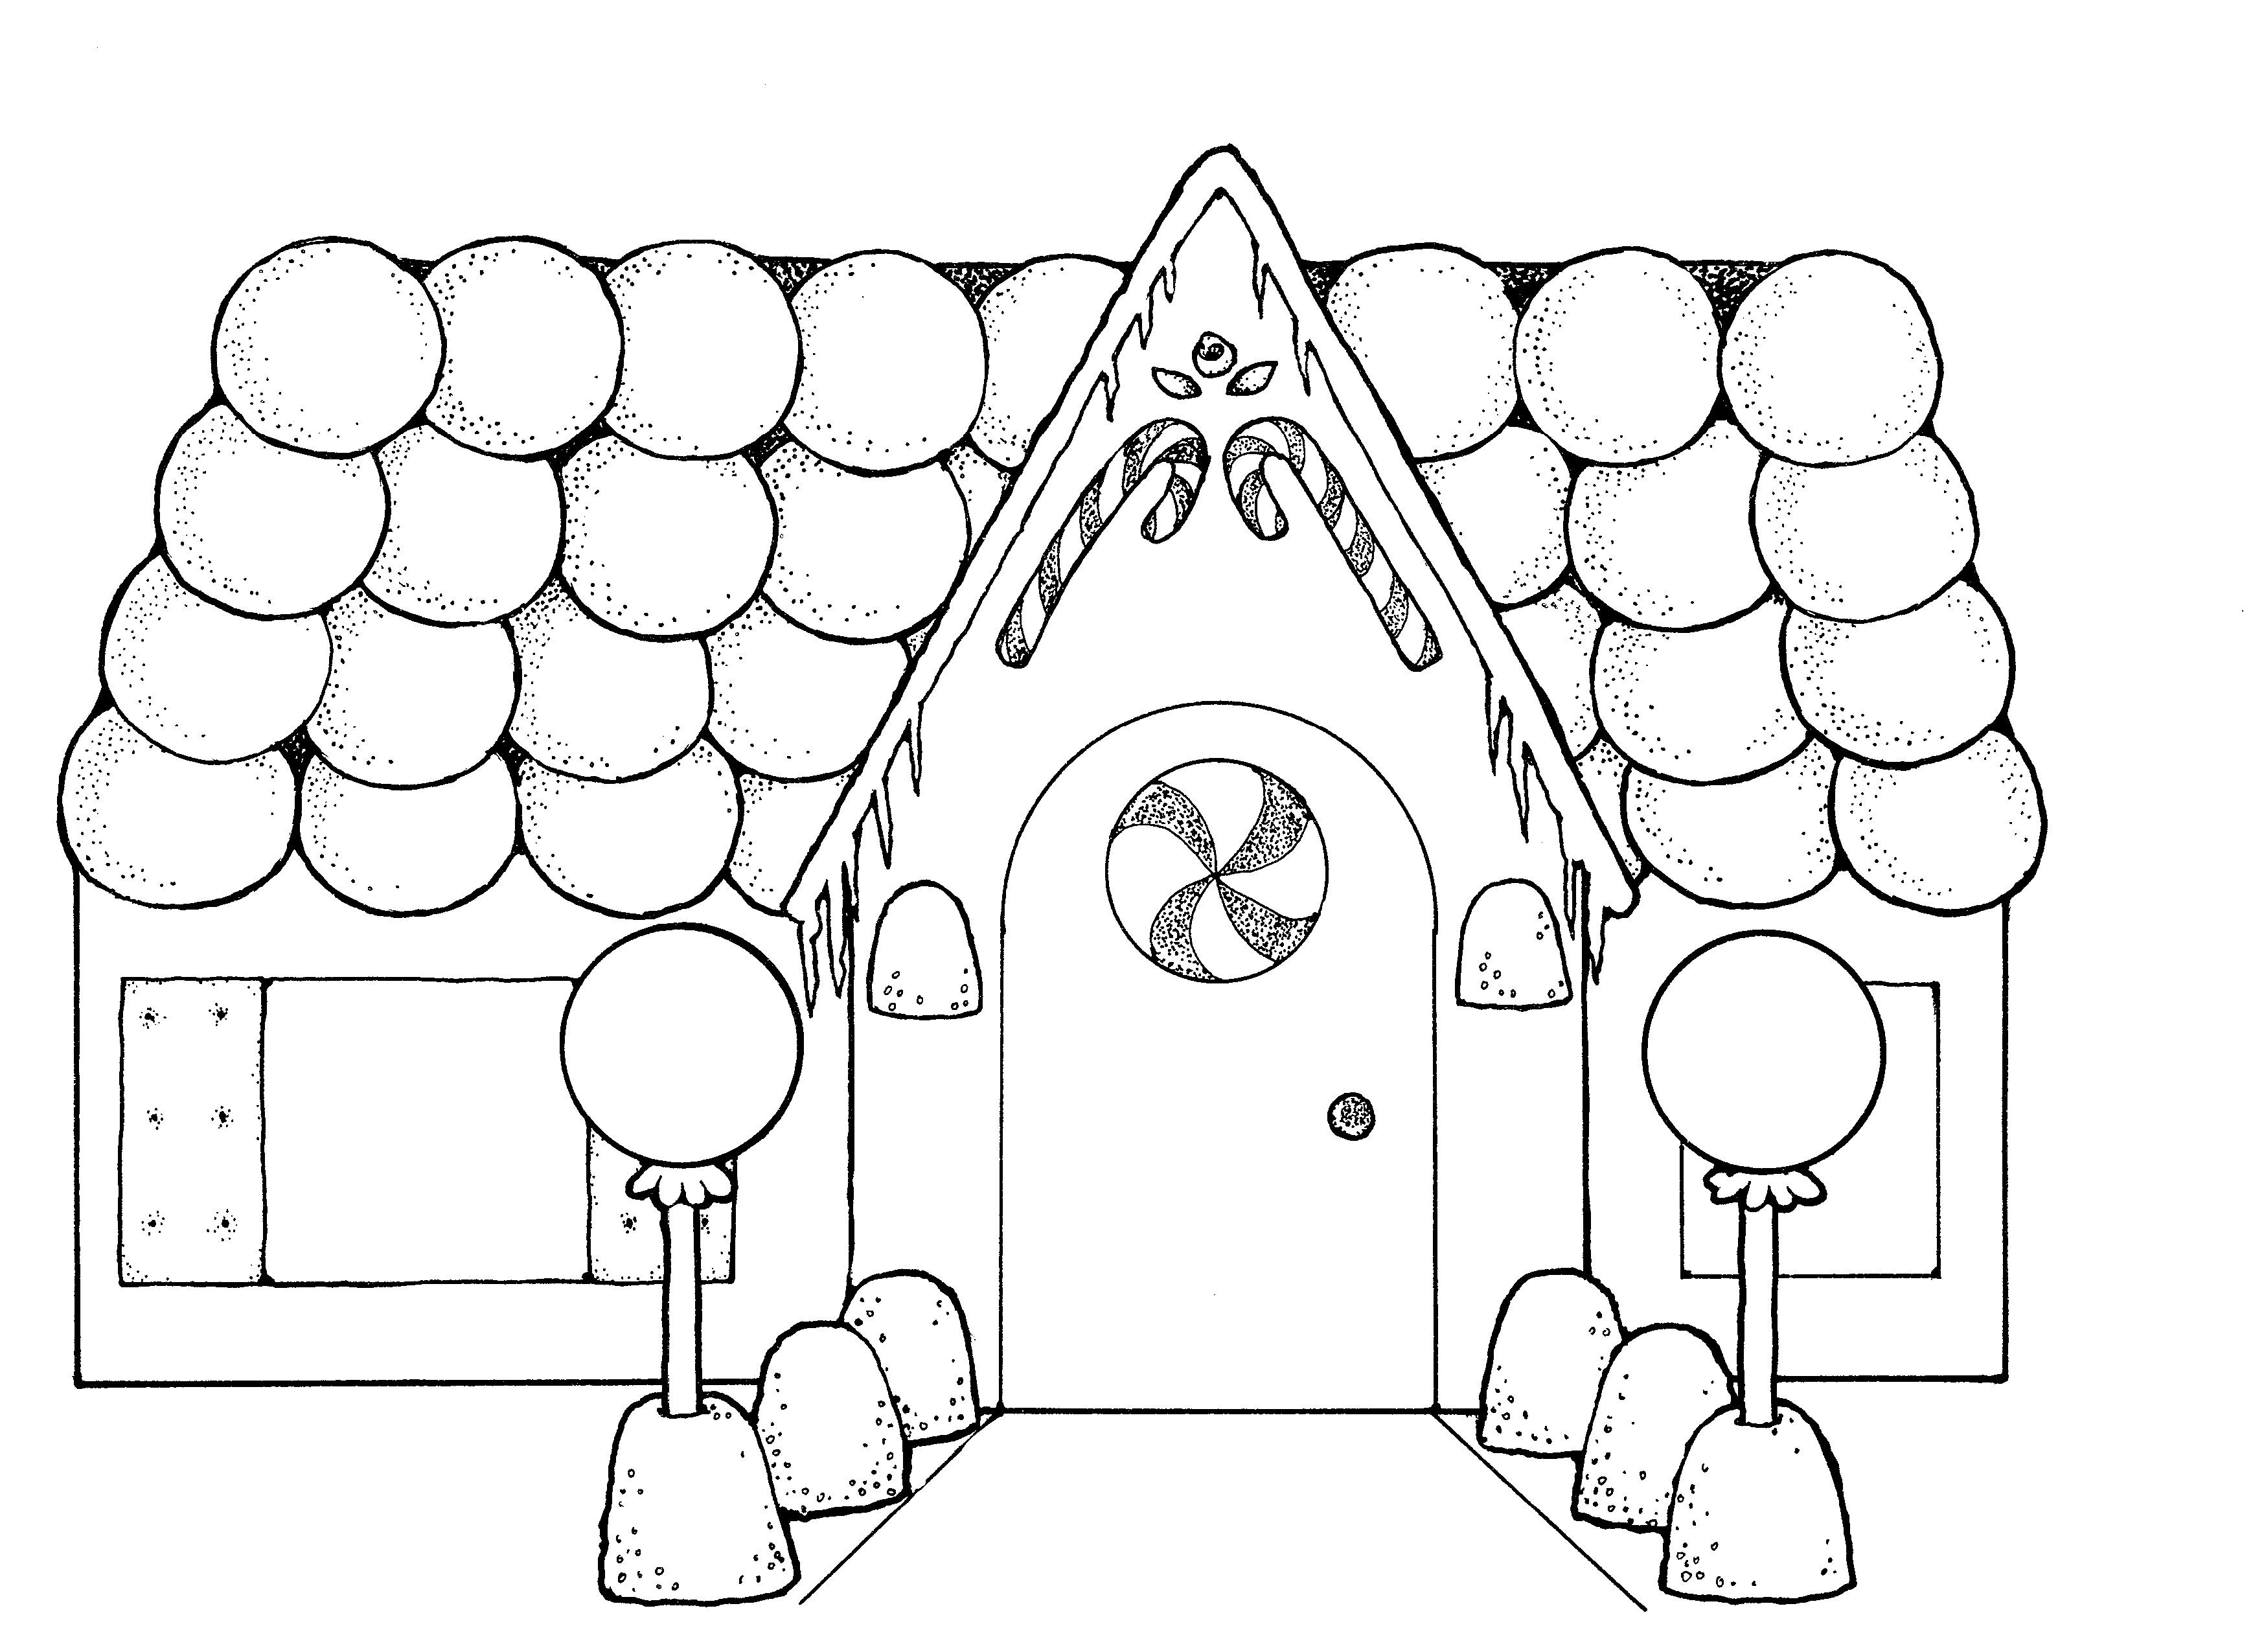 gingerbread house coloring pages - gingerbread houses coloring pages